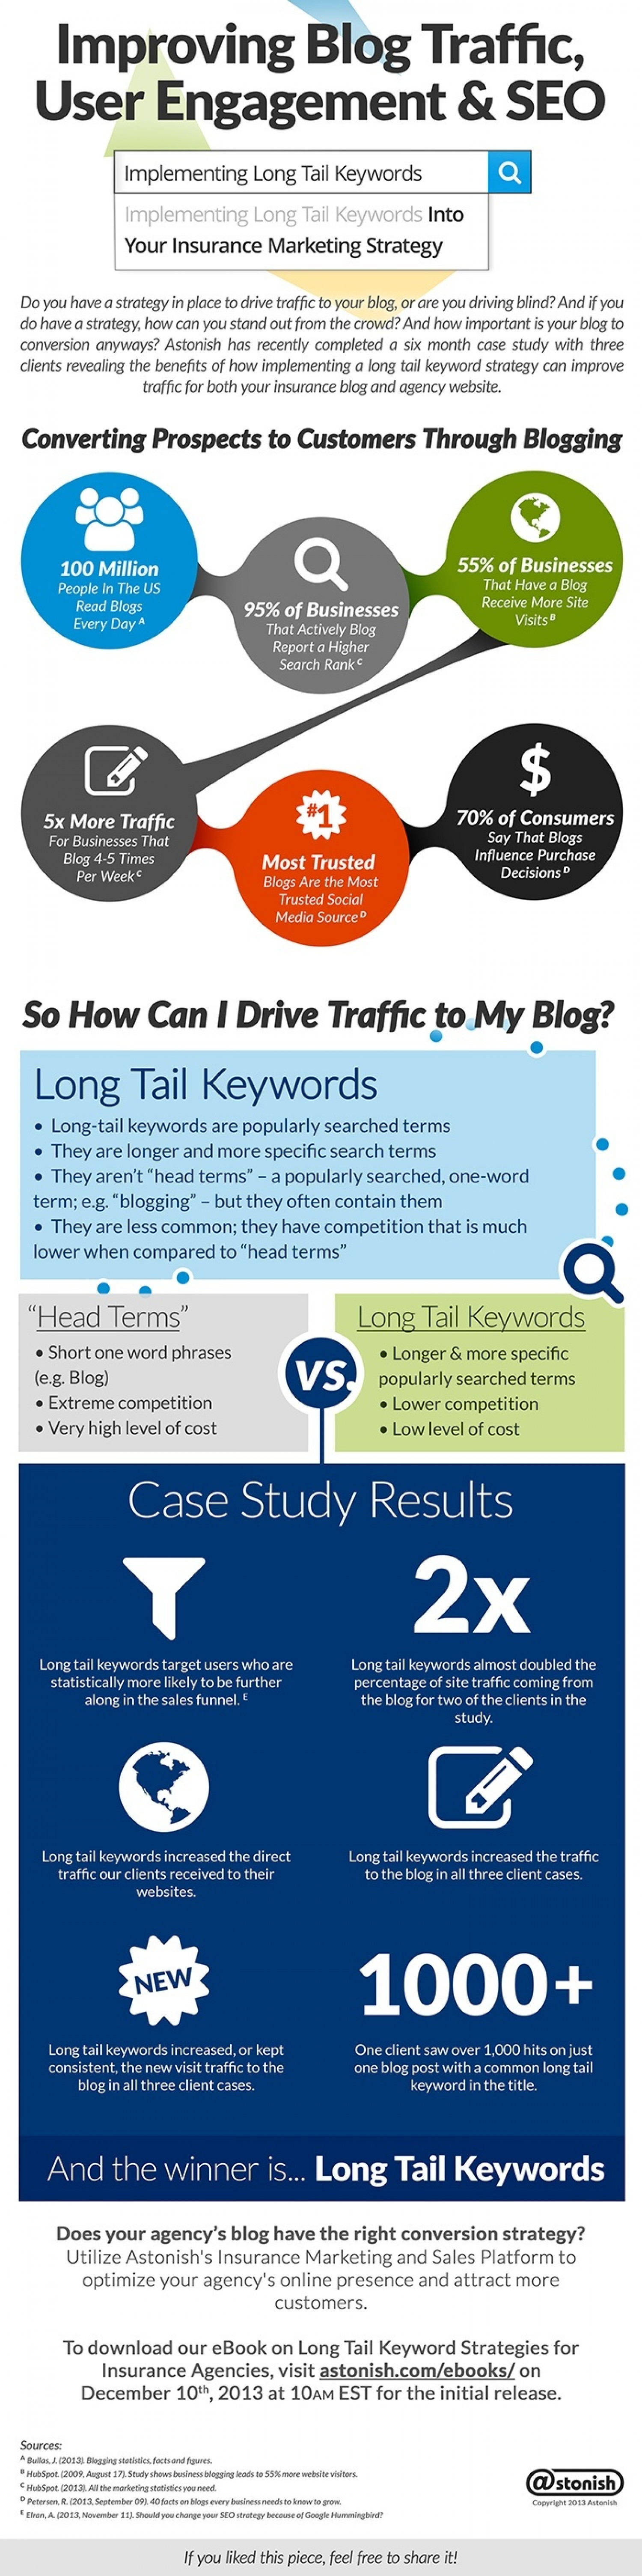 Improving Blog Traffic, User Engagement, and SEO Infographic